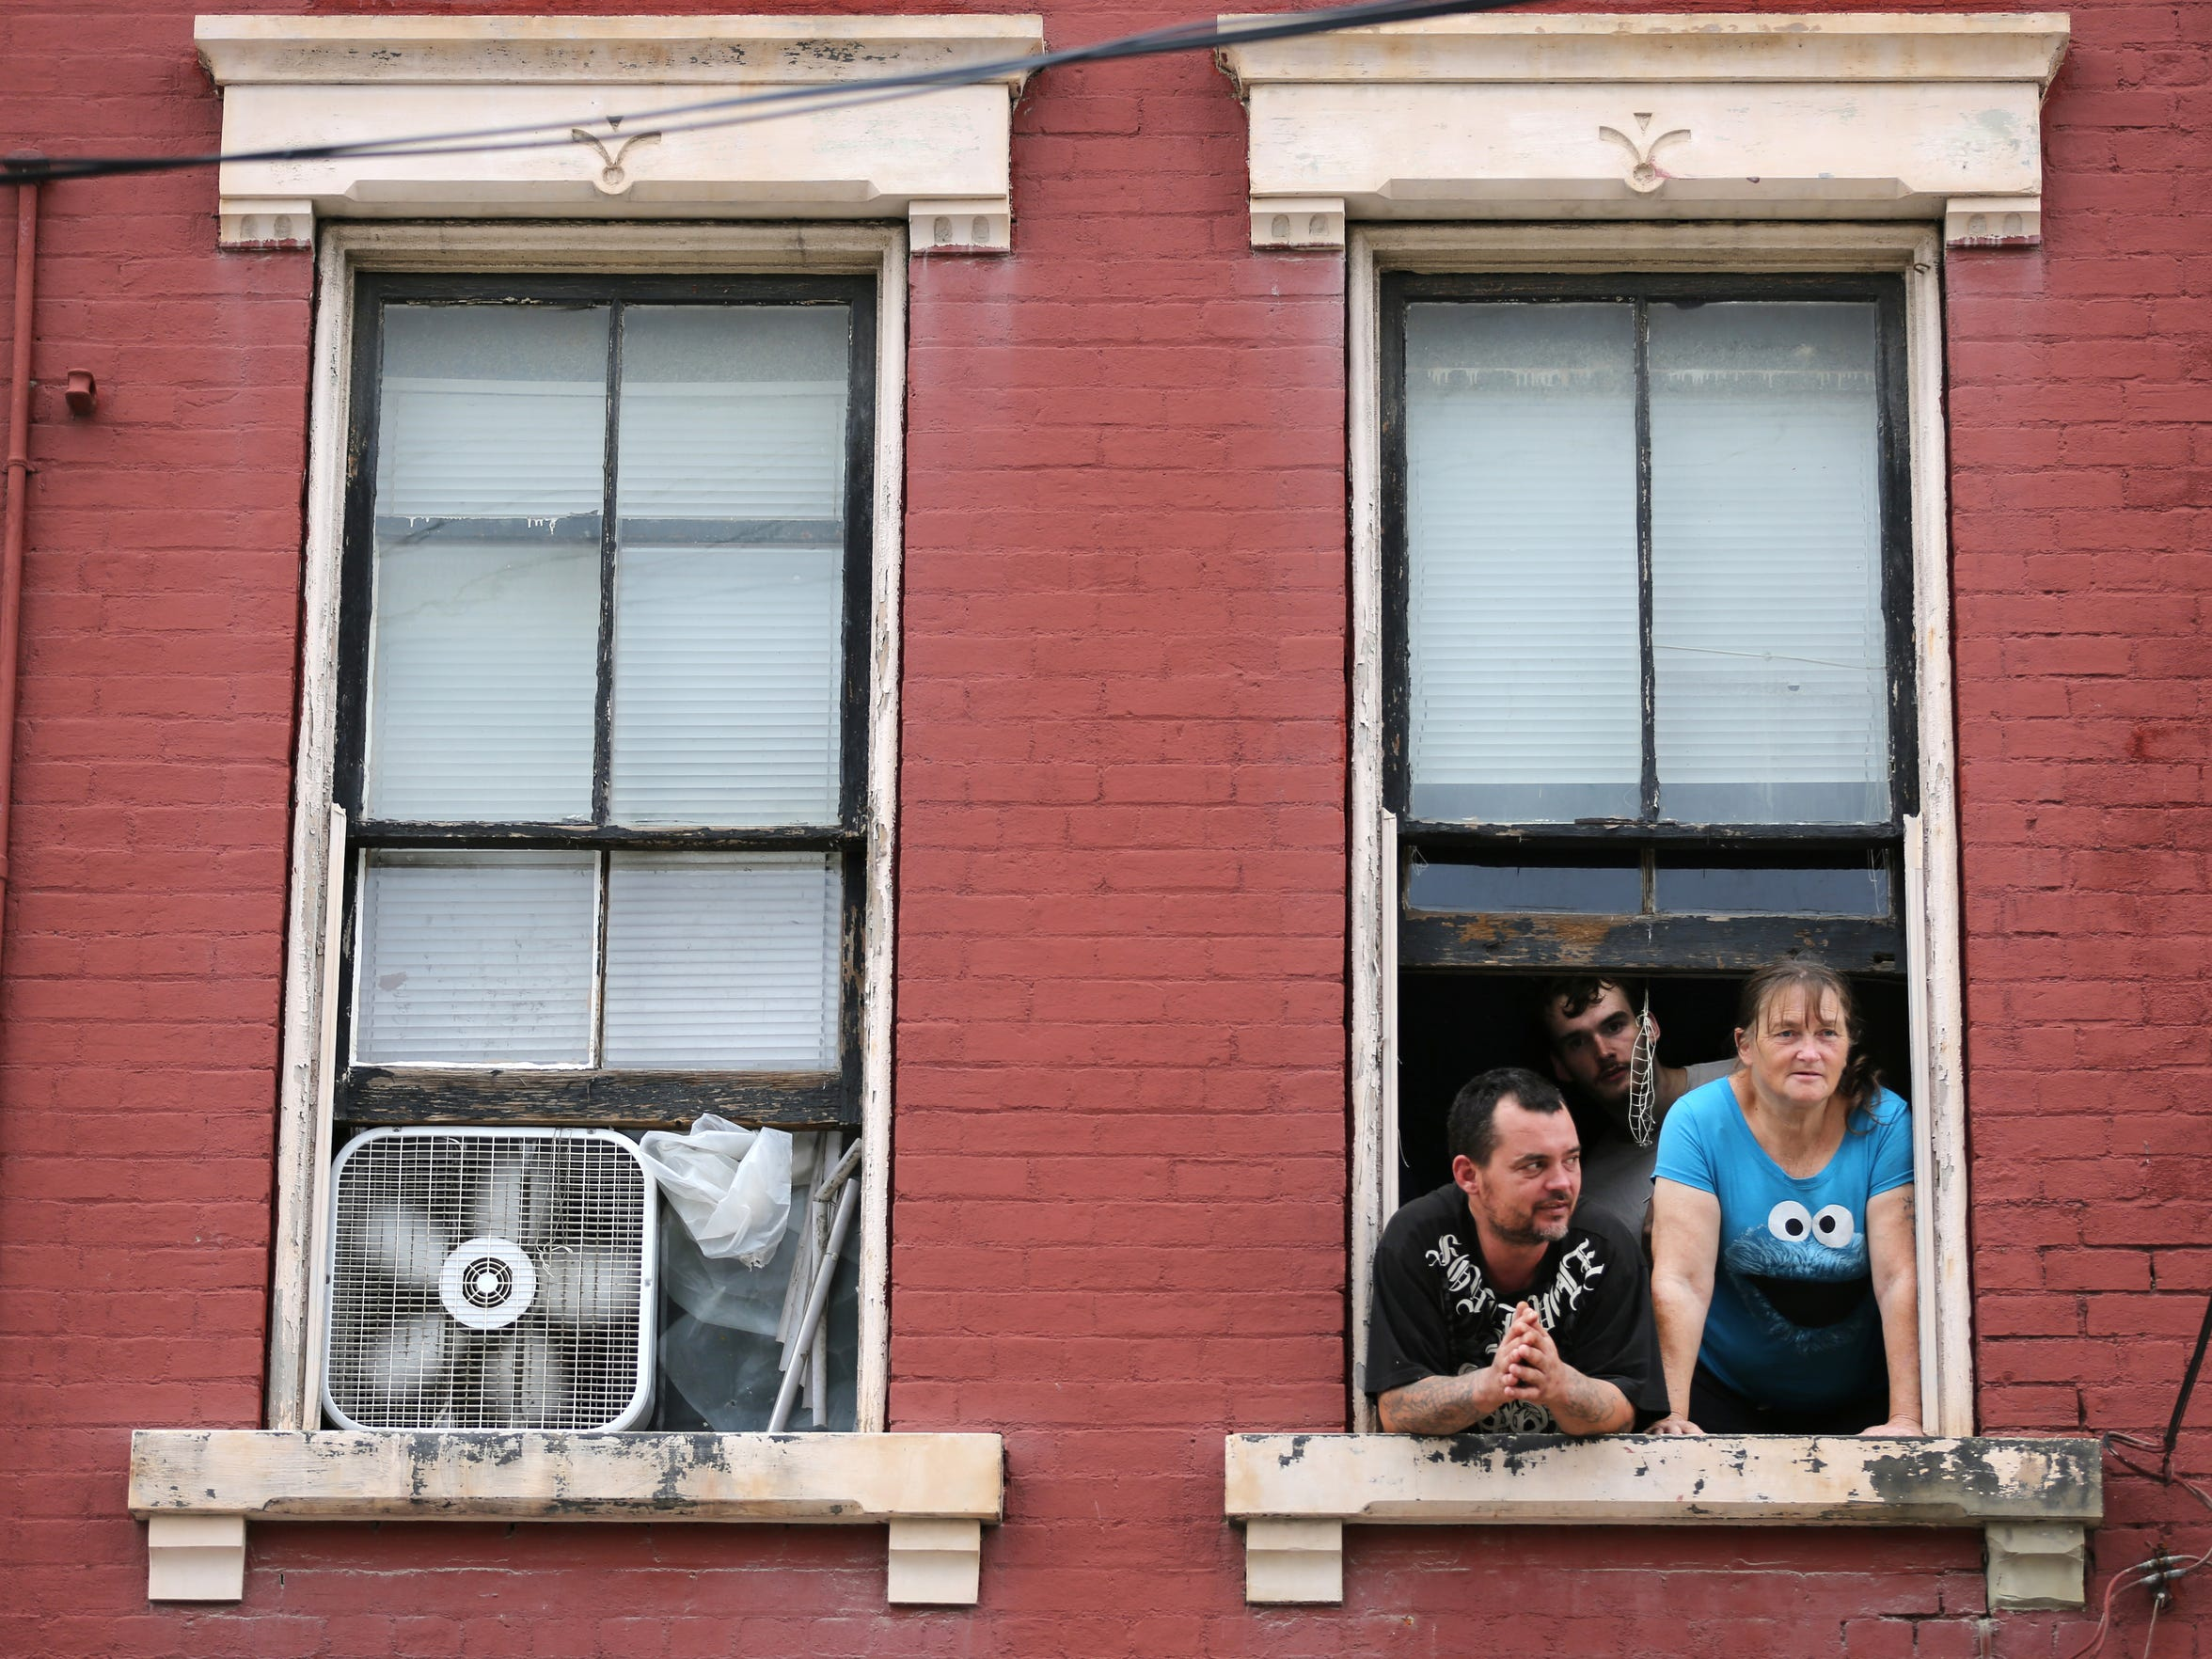 Rick Davis, left, and his son, Brandon, 18, and wife, Debbie, look out the window from their home on State Street in Lower Price Hill. The family has lived in Lower Price Hill their entire lives.